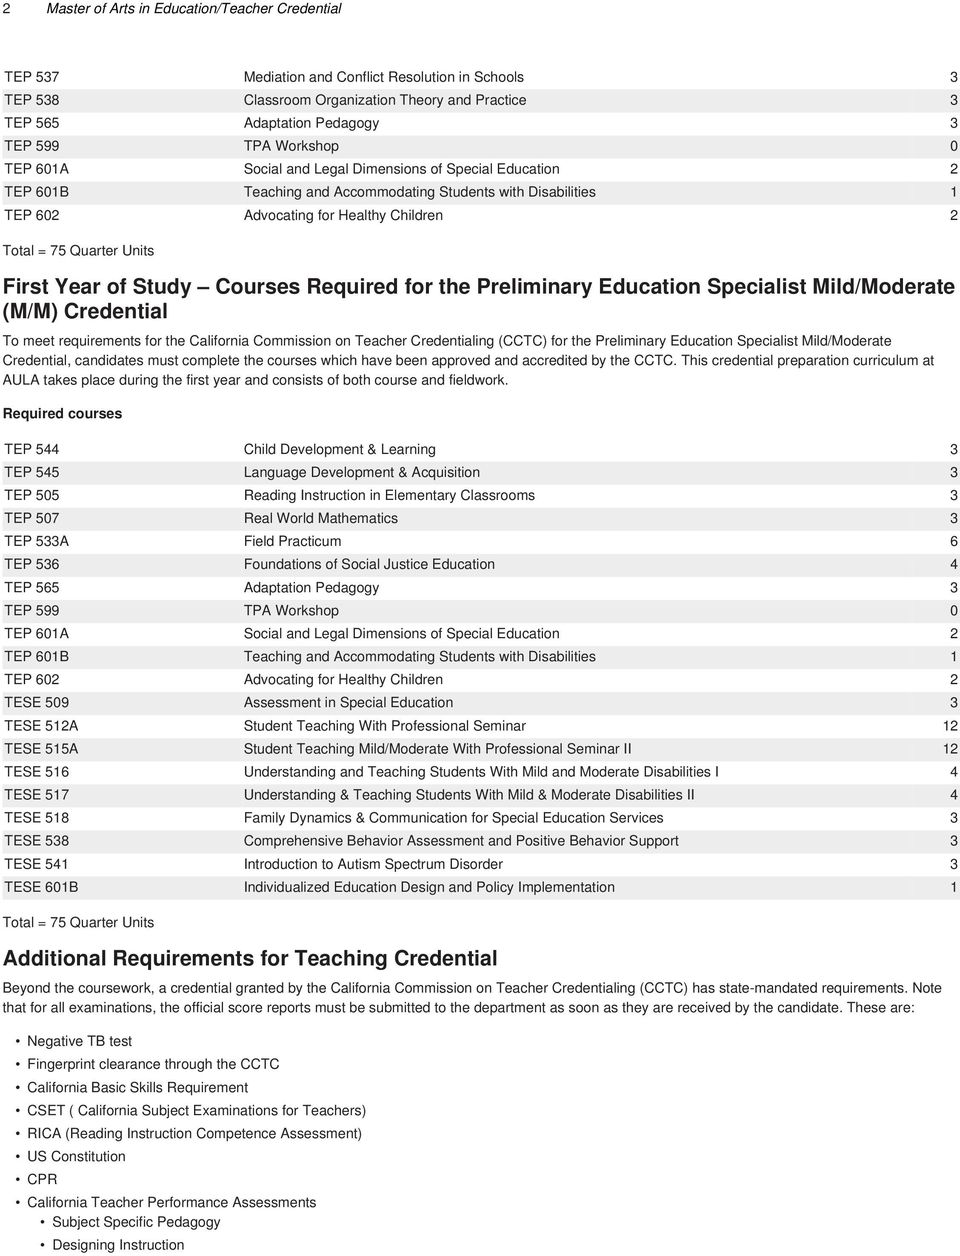 Master Of Arts In Education Teacher Credential Pdf